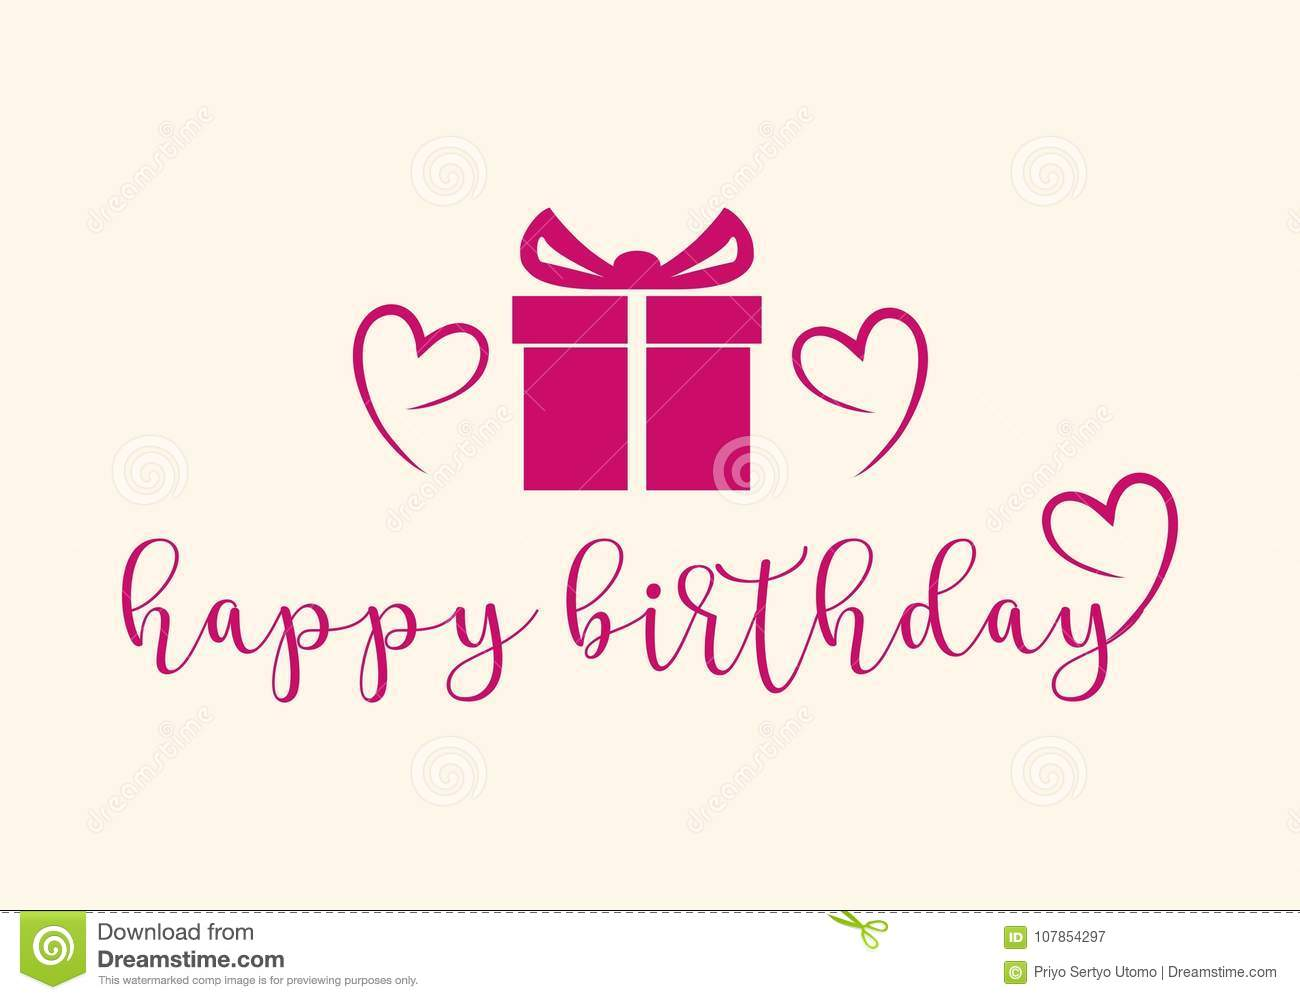 Happy Birthday Typographic Design For Greeting Cards Print And Cloths